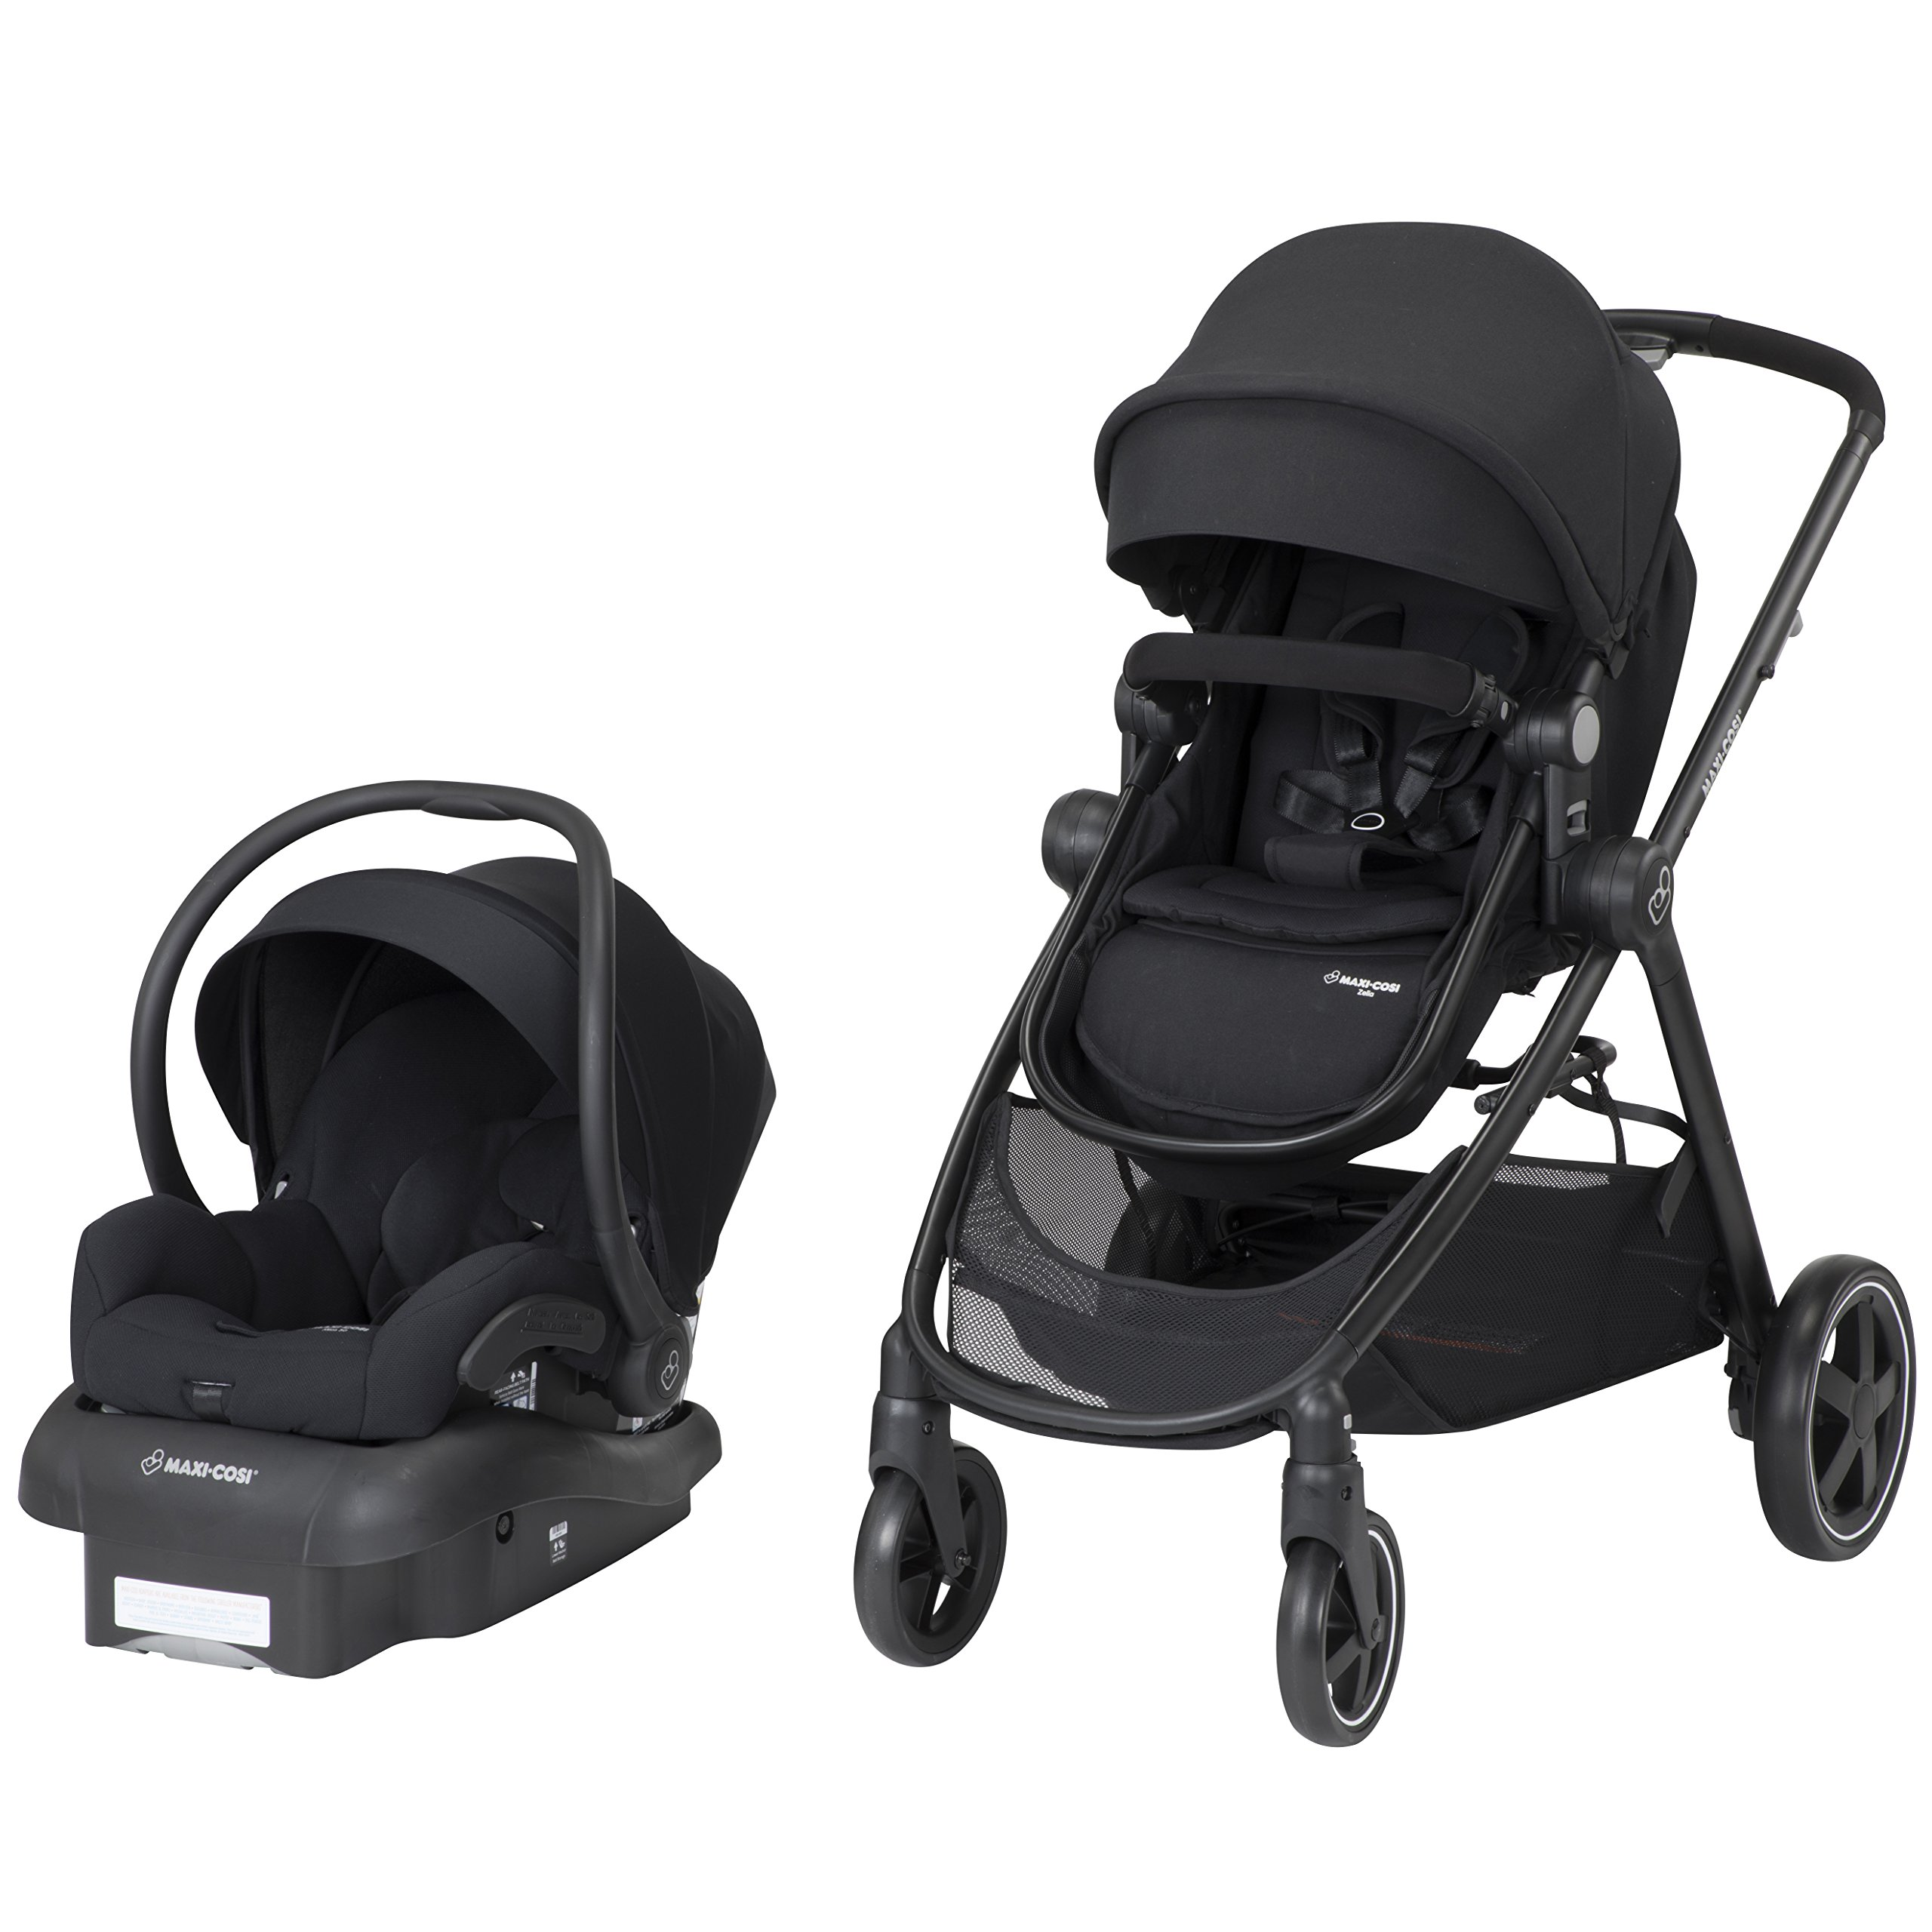 Maxi-Cosi Zelia 5-In-1 Modular Travel System, Night Black, One Size by Maxi-Cosi